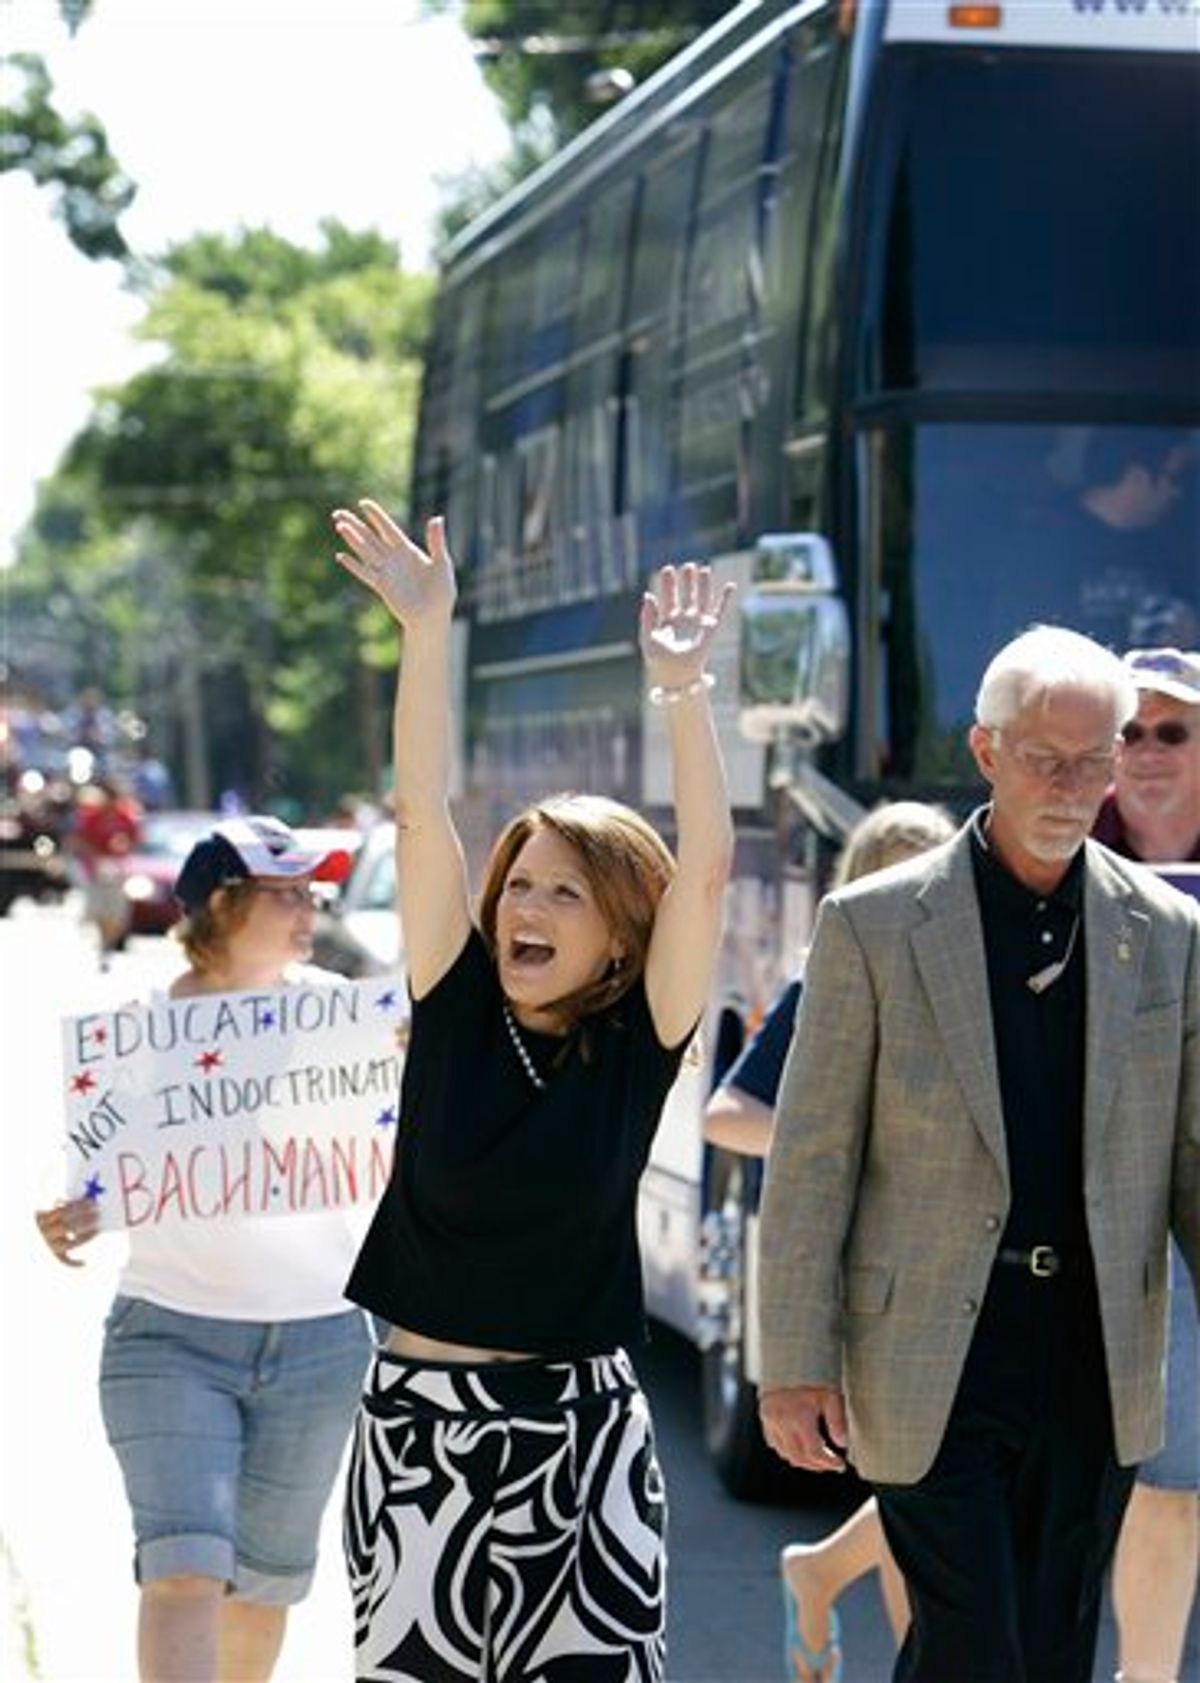 Republican presidential candidate, Rep. Michele Bachmann, R-Minn., waves while walking in the Fourth of July parade in Clear Lake, Iowa., Monday, July 4, 2011.  (AP Photo/Charlie Neibergall) (AP)